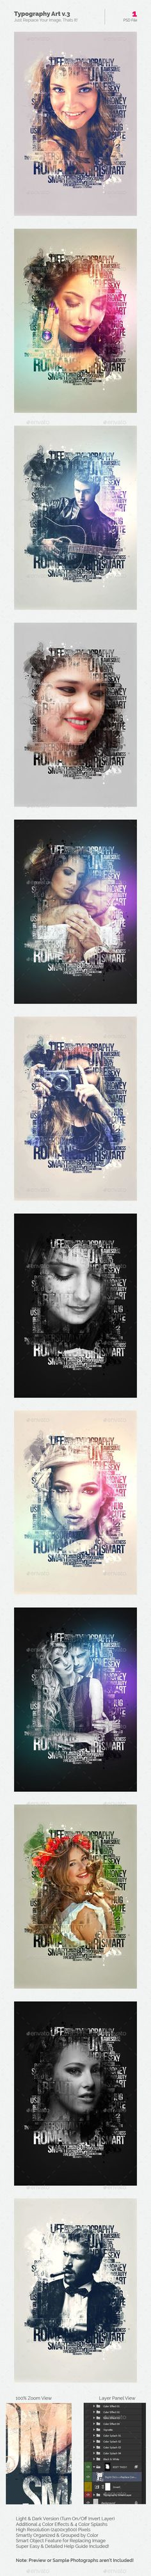 Typography Art Photo Template #photography Download: http://graphicriver.net/item/typography-art-v3/13443358?ref=ksioks